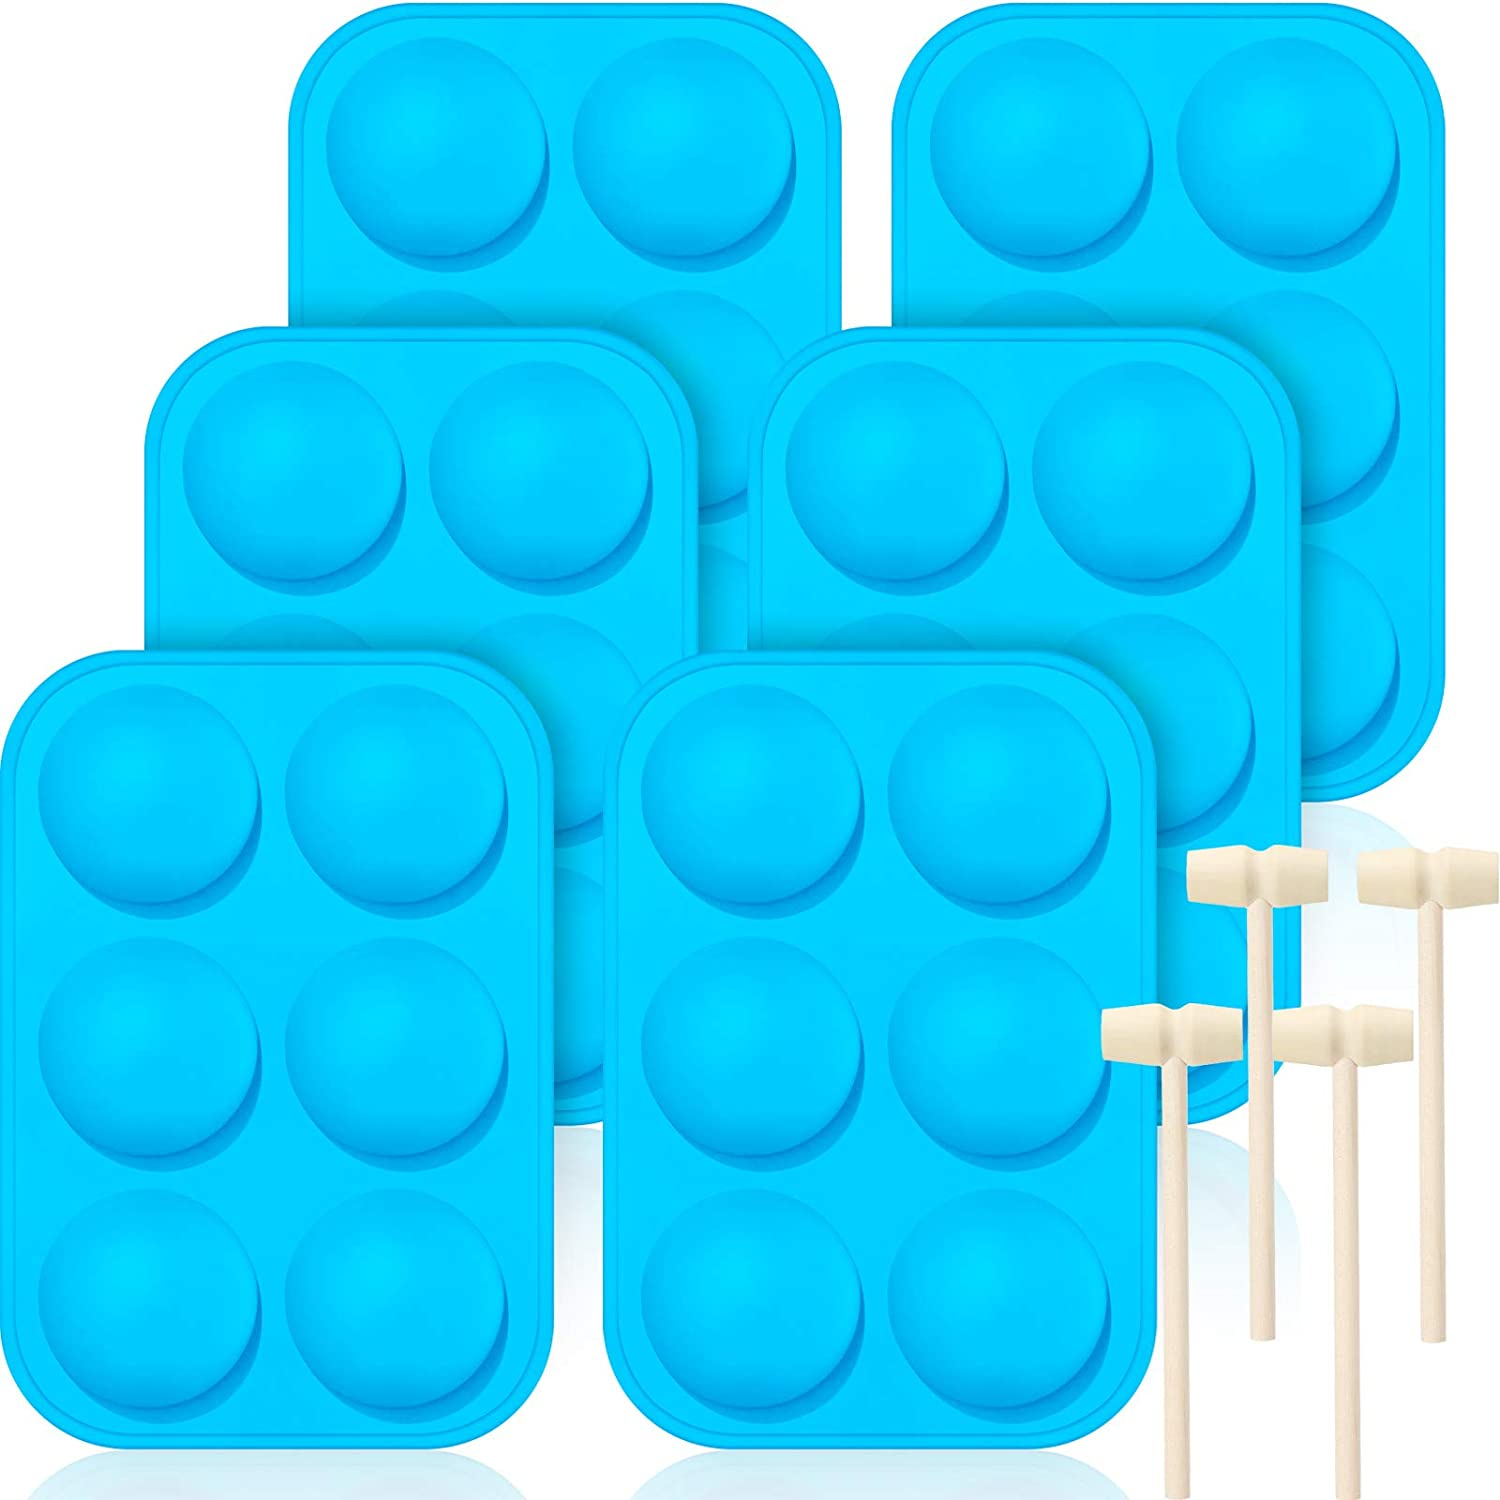 Cake Jelly Blue 6 Pieces Semi Sphere Silicone Molds for Chocolate,Large Half Round Sphere Silicone Molds Hemisphere Sphere Baking Molds with 4 Pieces Wooden Hammers for Chocolate